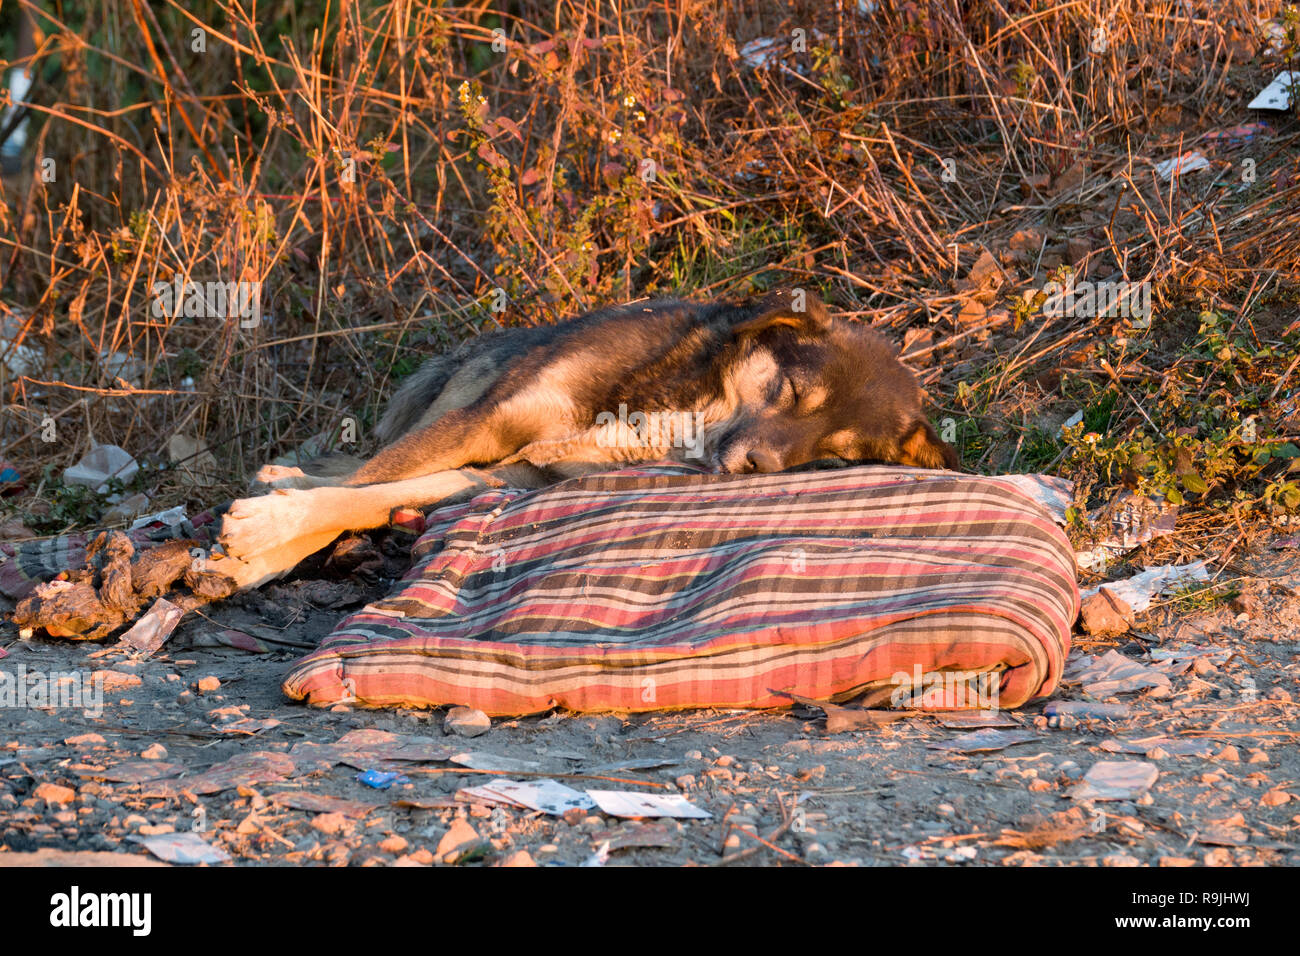 Street dog sleeping on discarded bedding in India - Stock Image